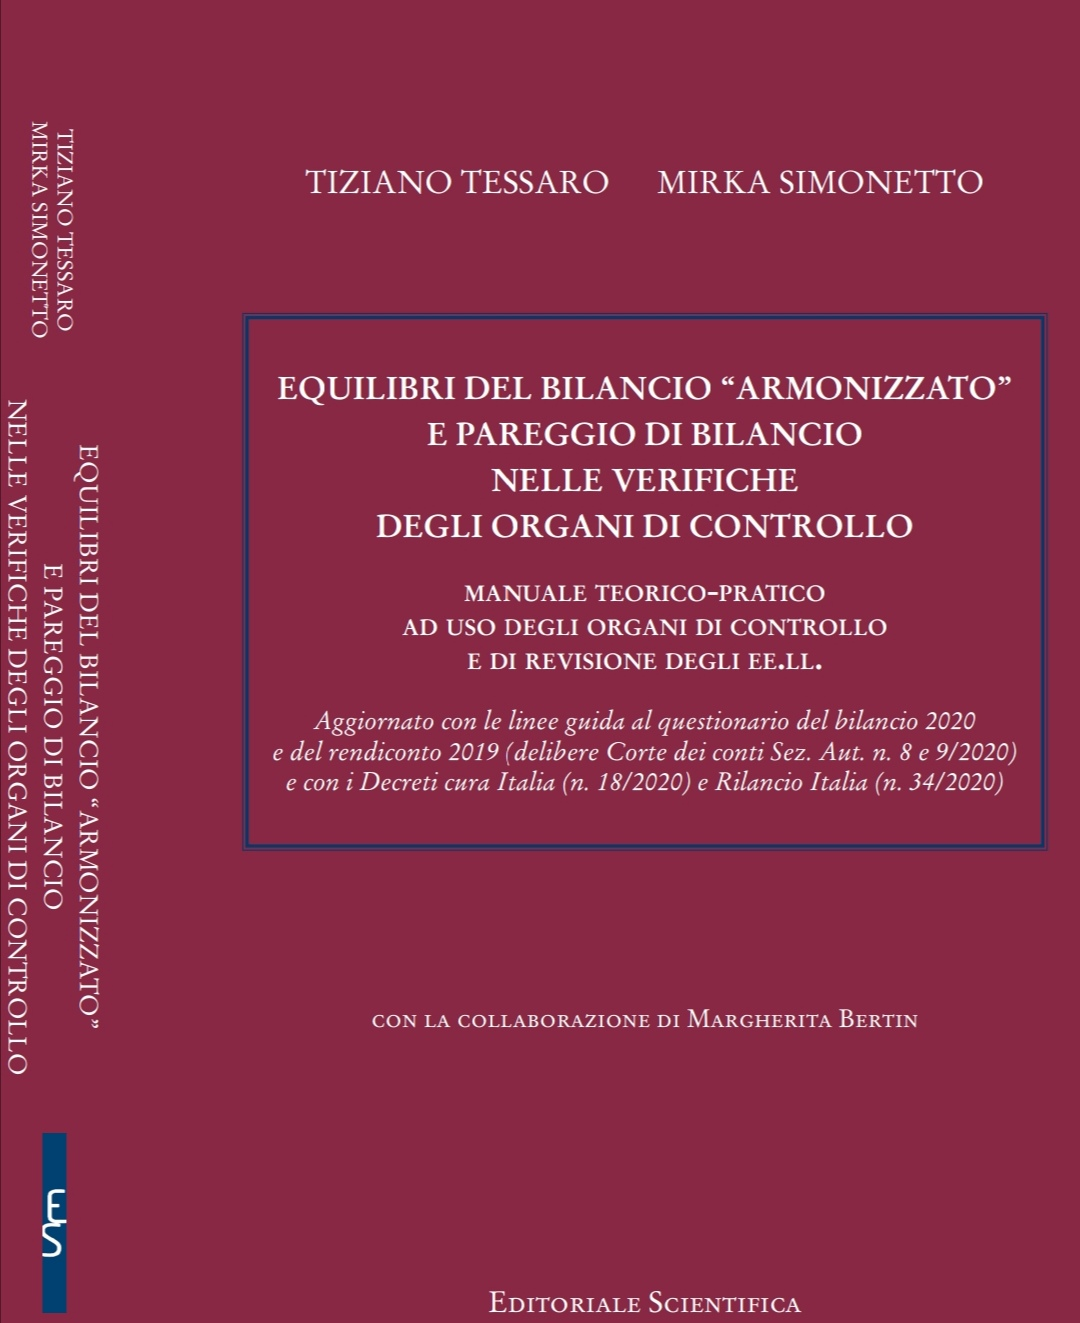 Screenshot Libro Tessaro